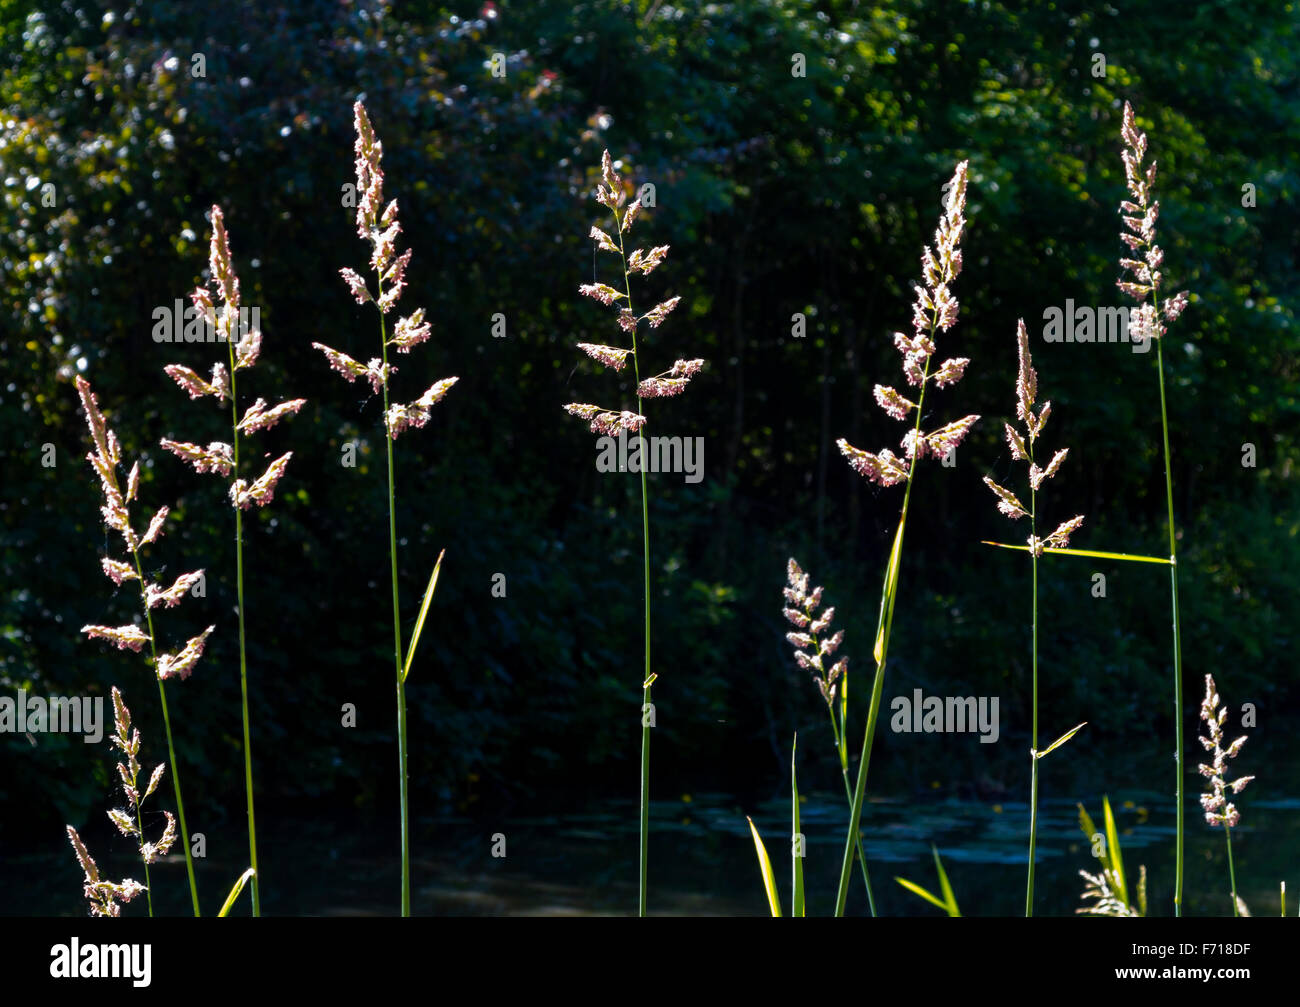 Backlit view of grass stems growing in summer against a dark background - Stock Image